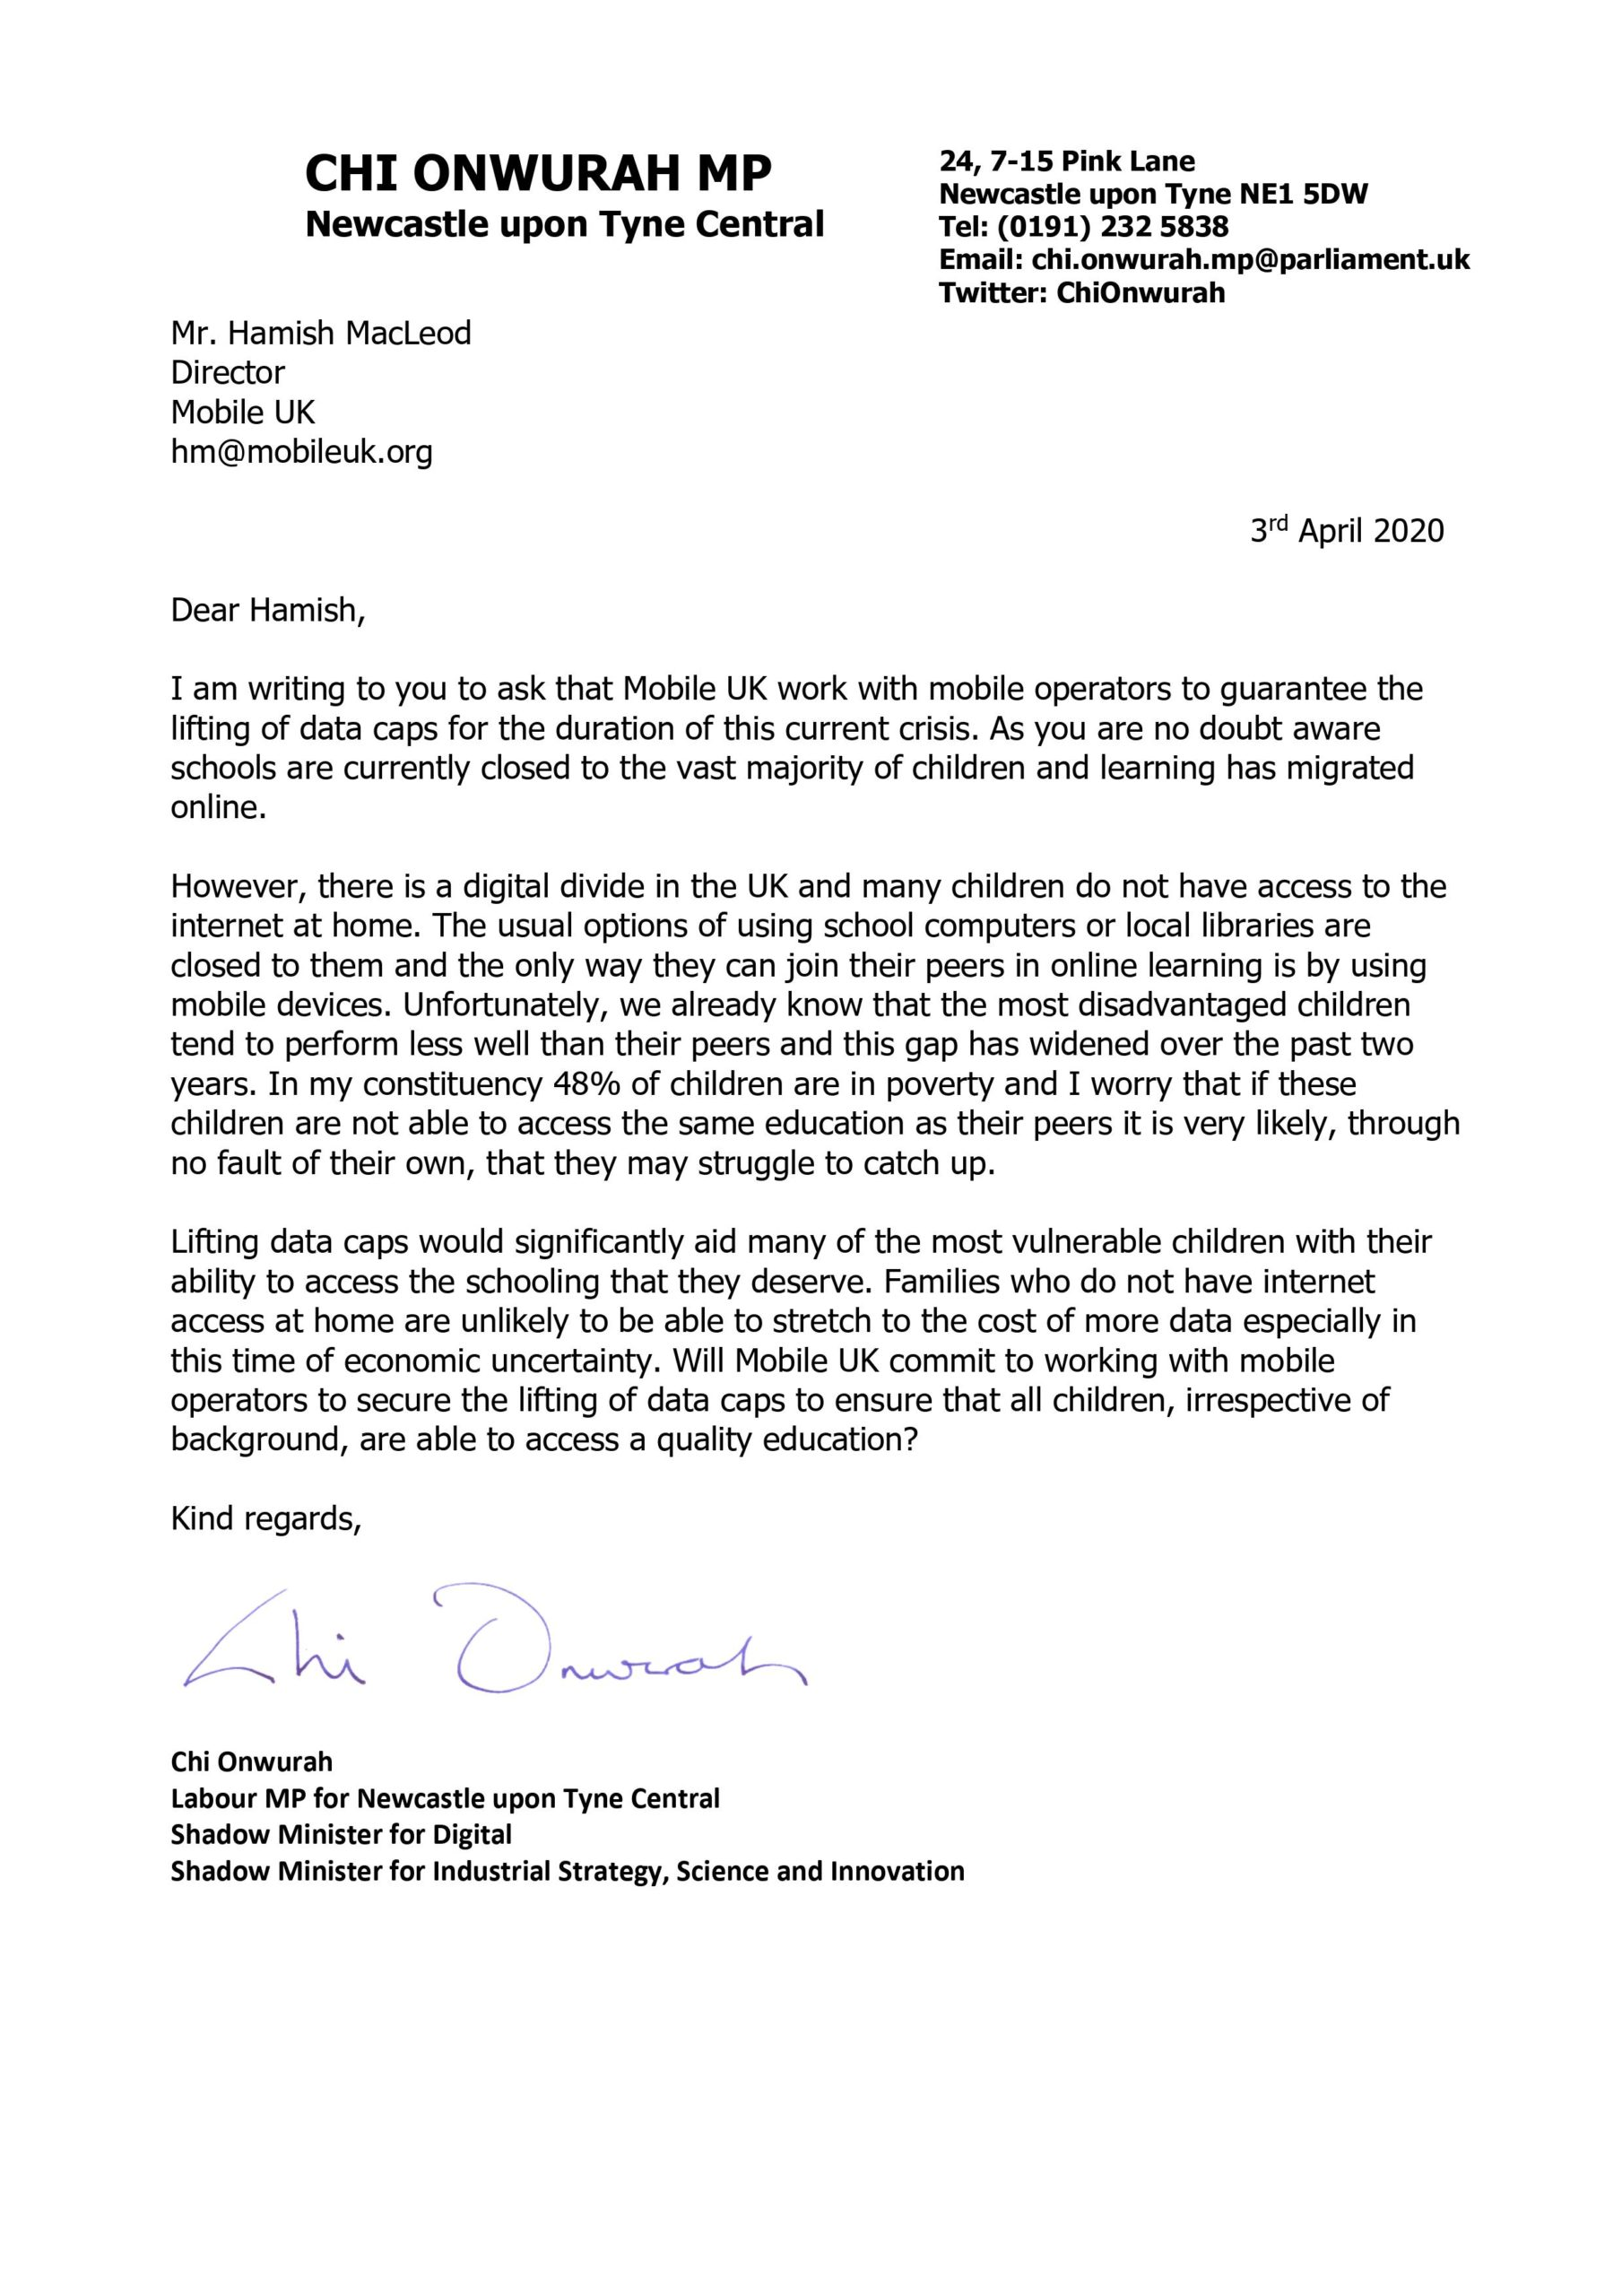 Chi writes to Hamish MacLeod of Mobile UK calling for data caps to be lifted